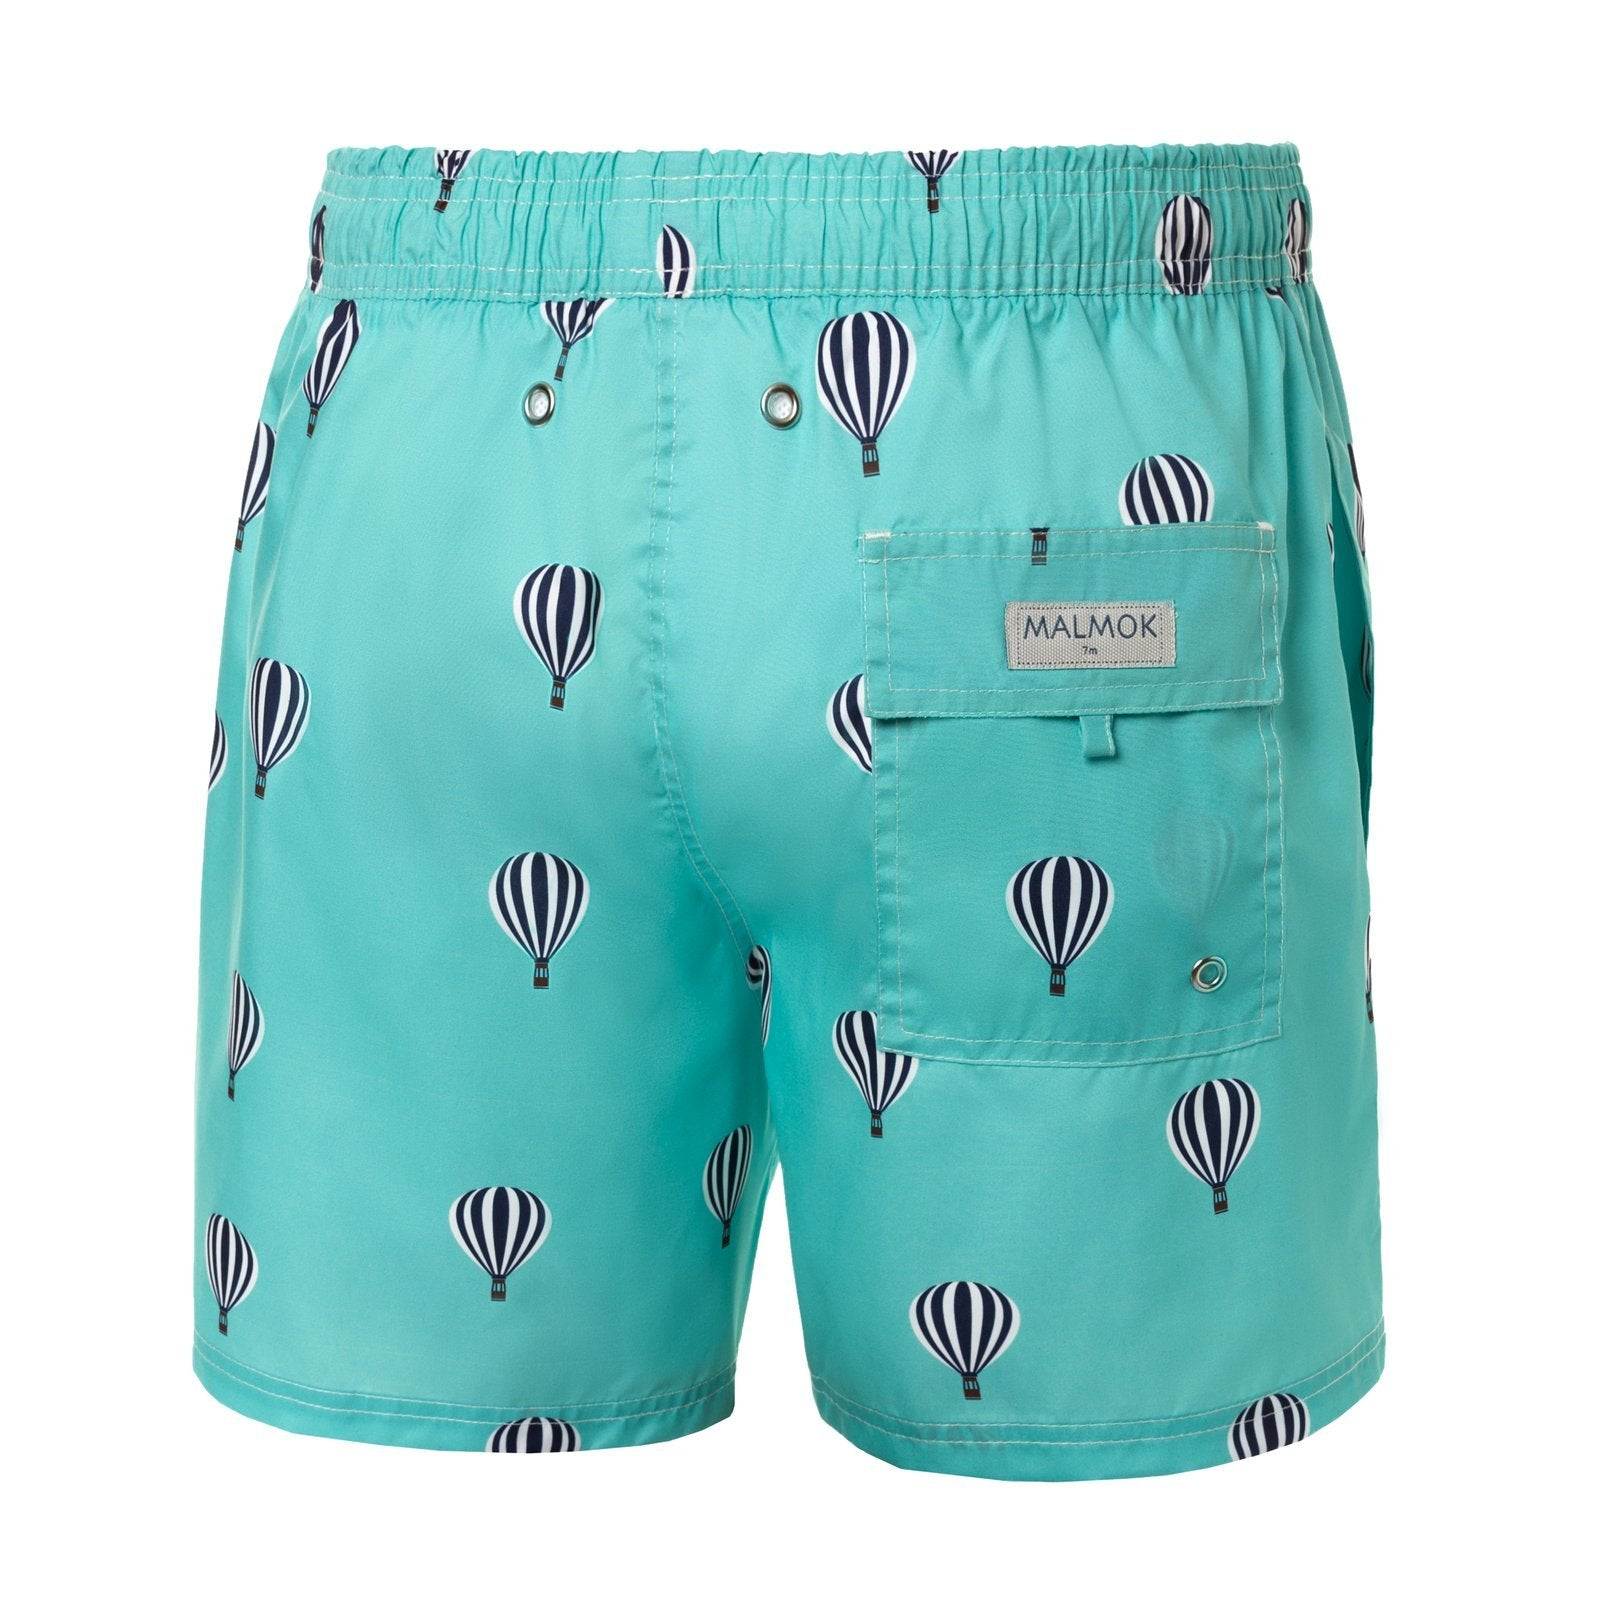 Globes Men's Swim Trunks